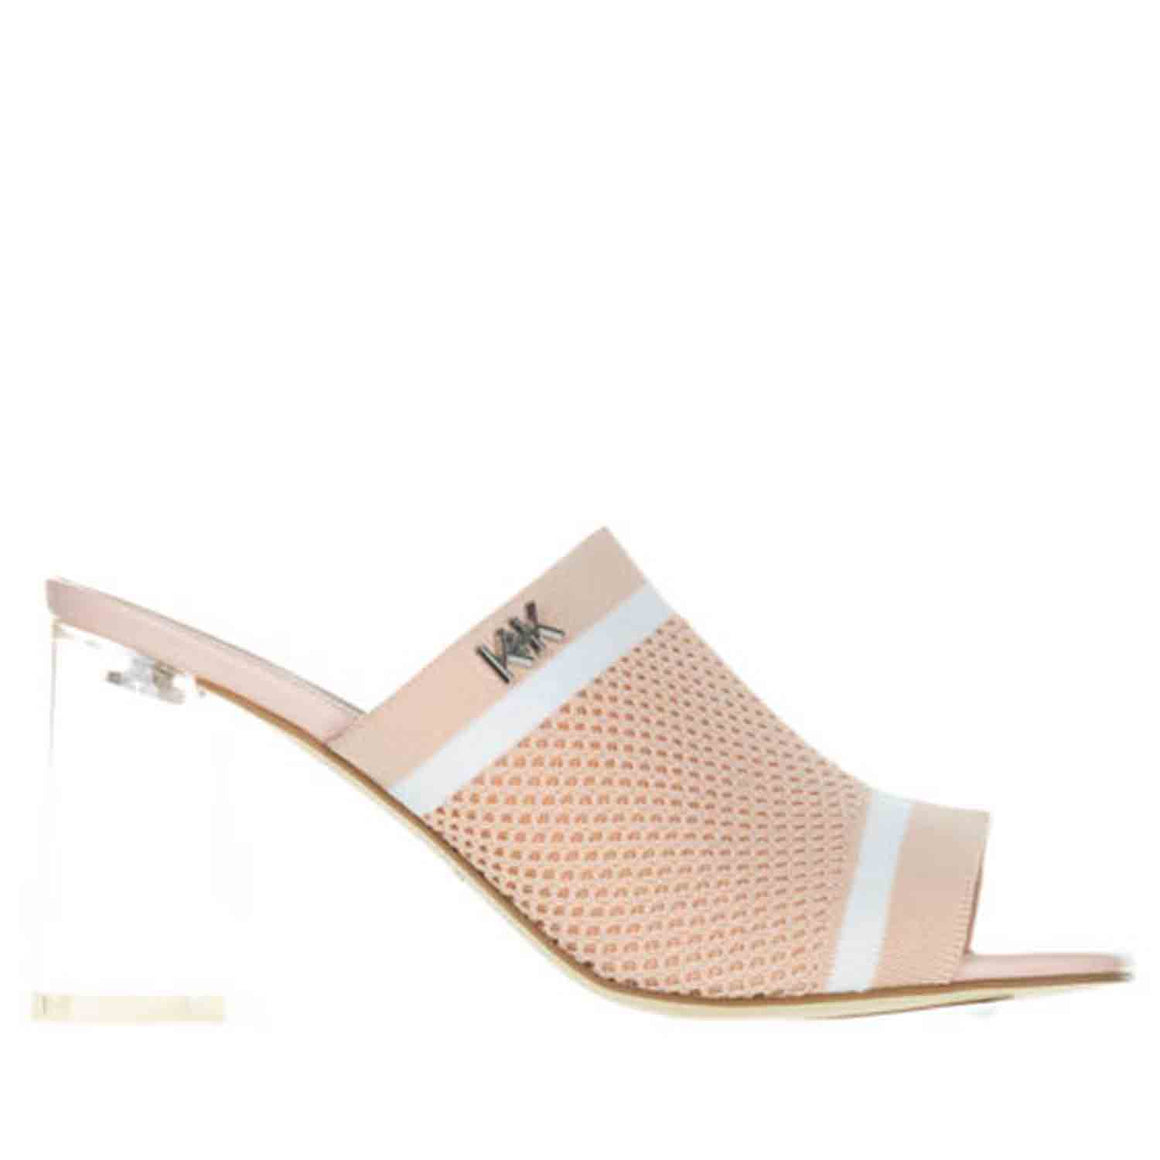 KENDALL + KYLIE CORTINA NUDE SANDAL